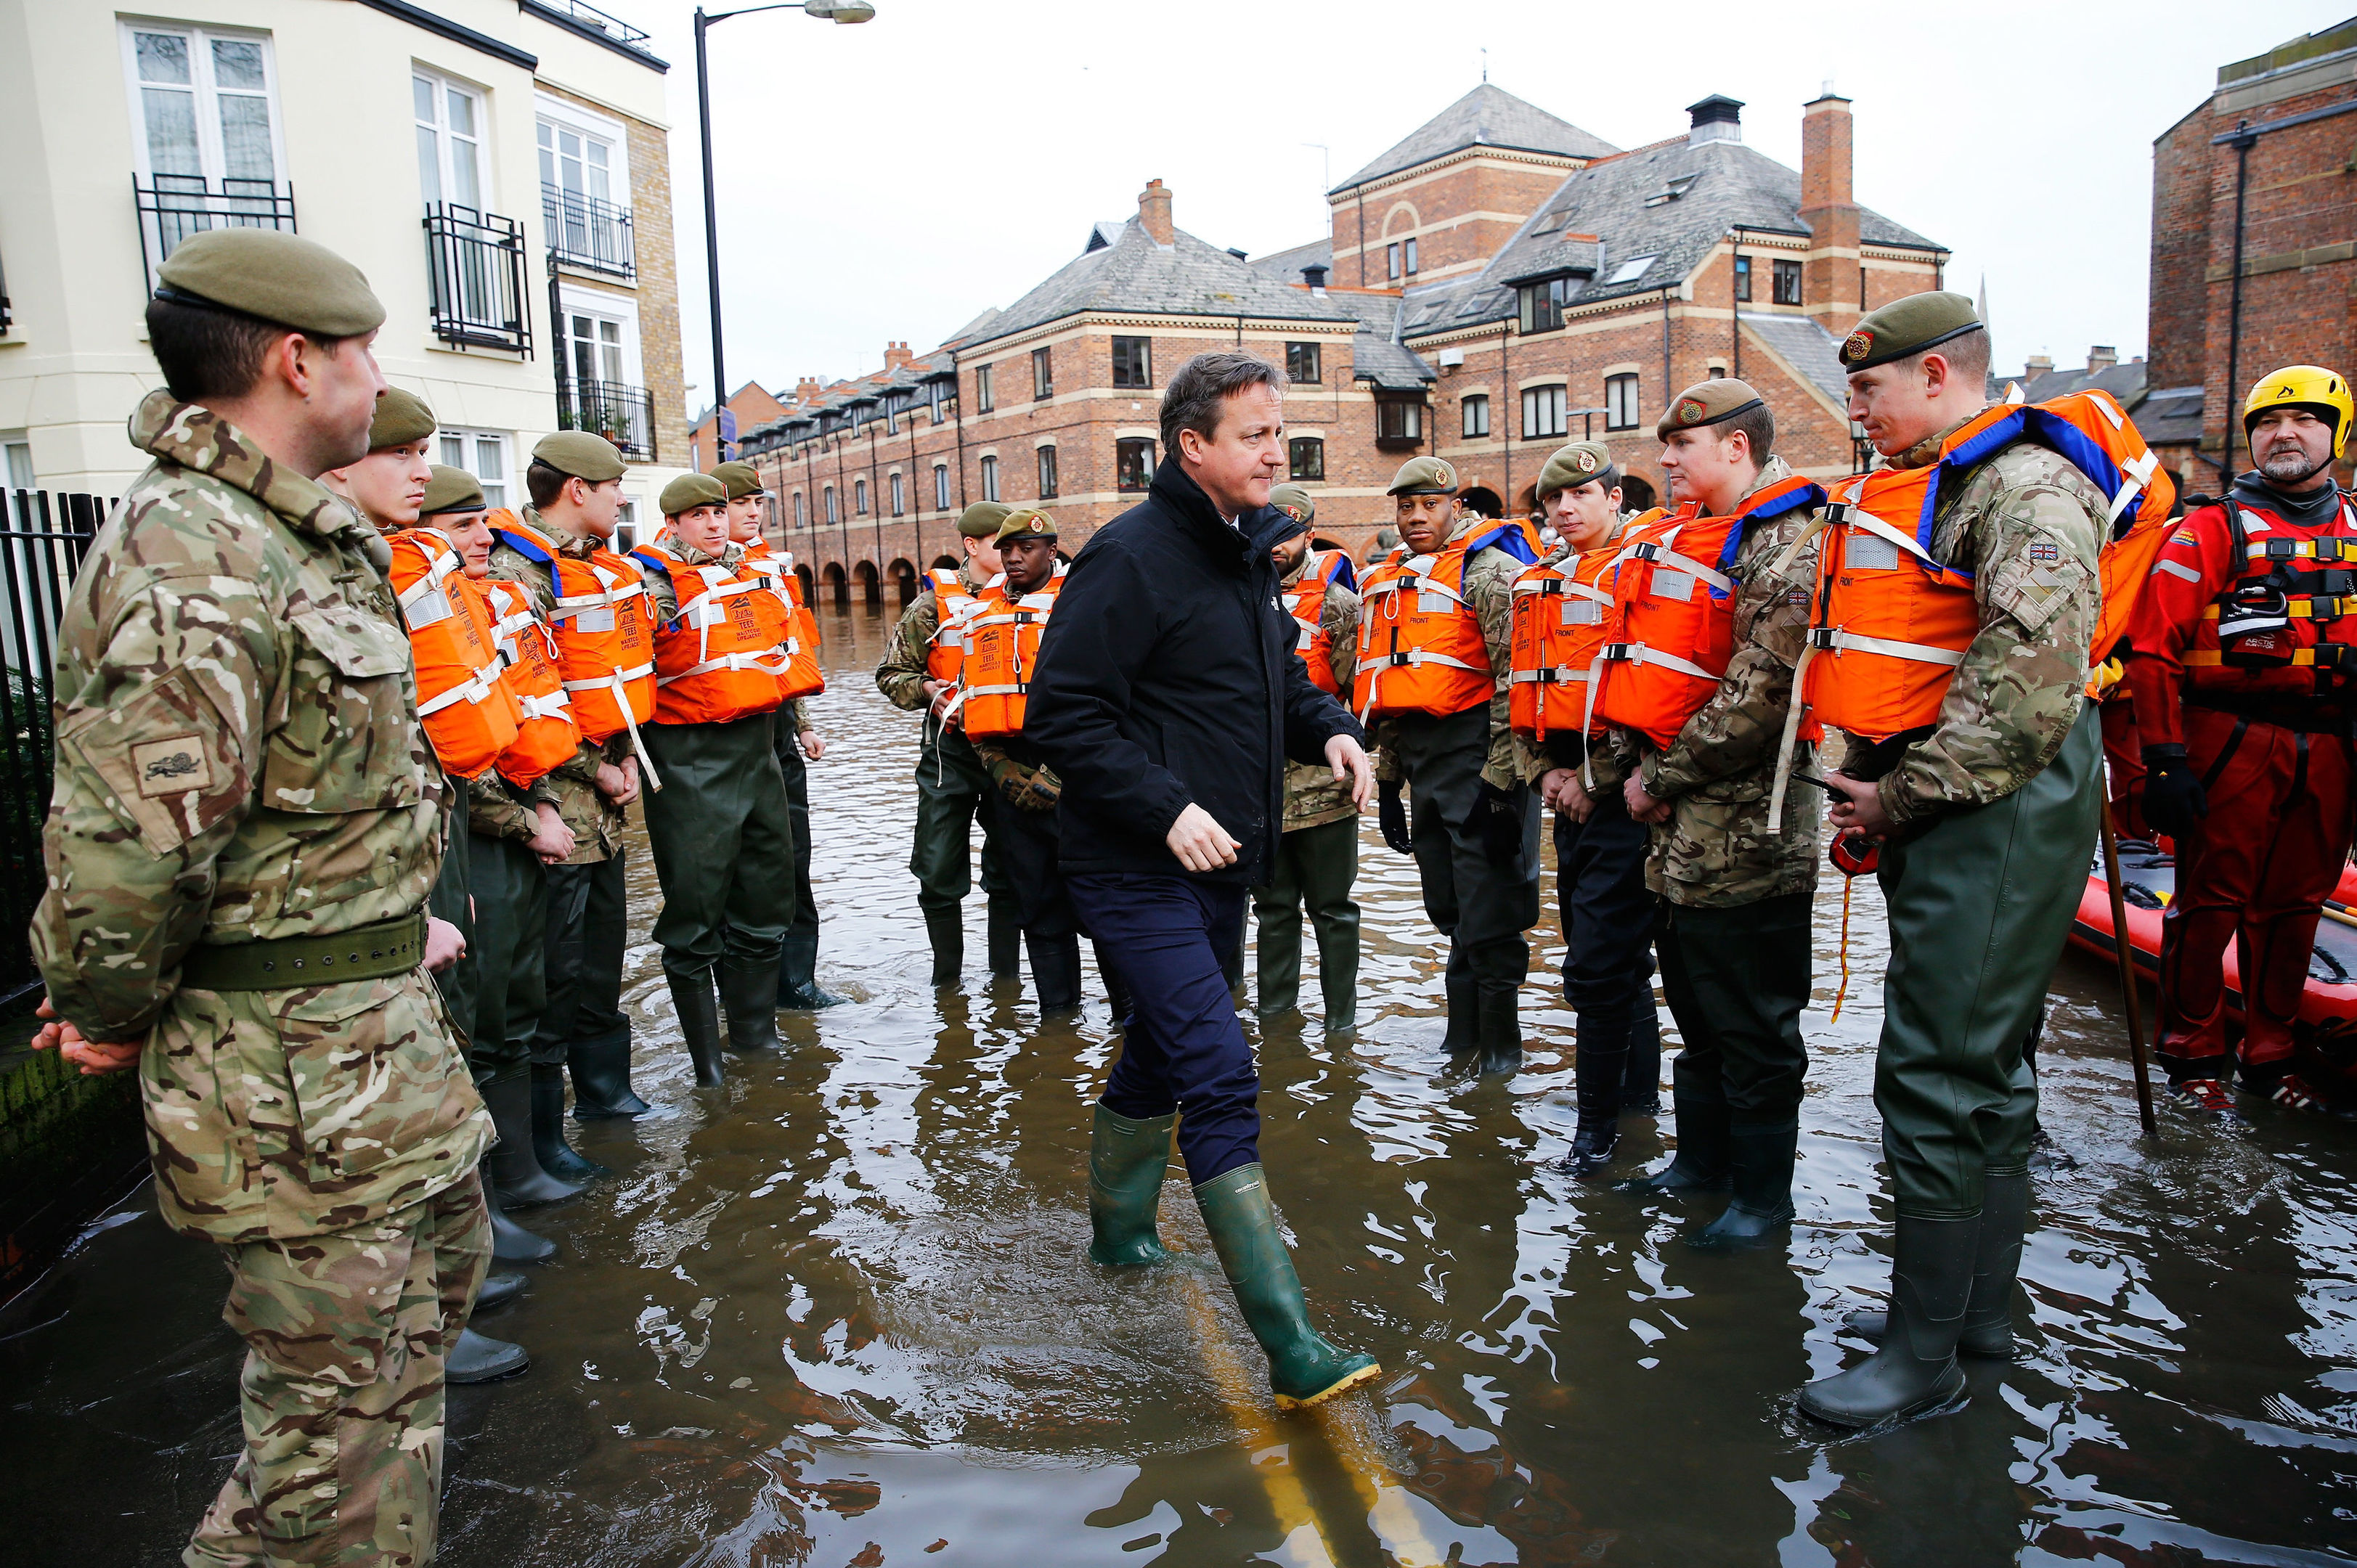 David Cameron meets soldiers working on flood relief in York (Darren Staples/PA Wire)